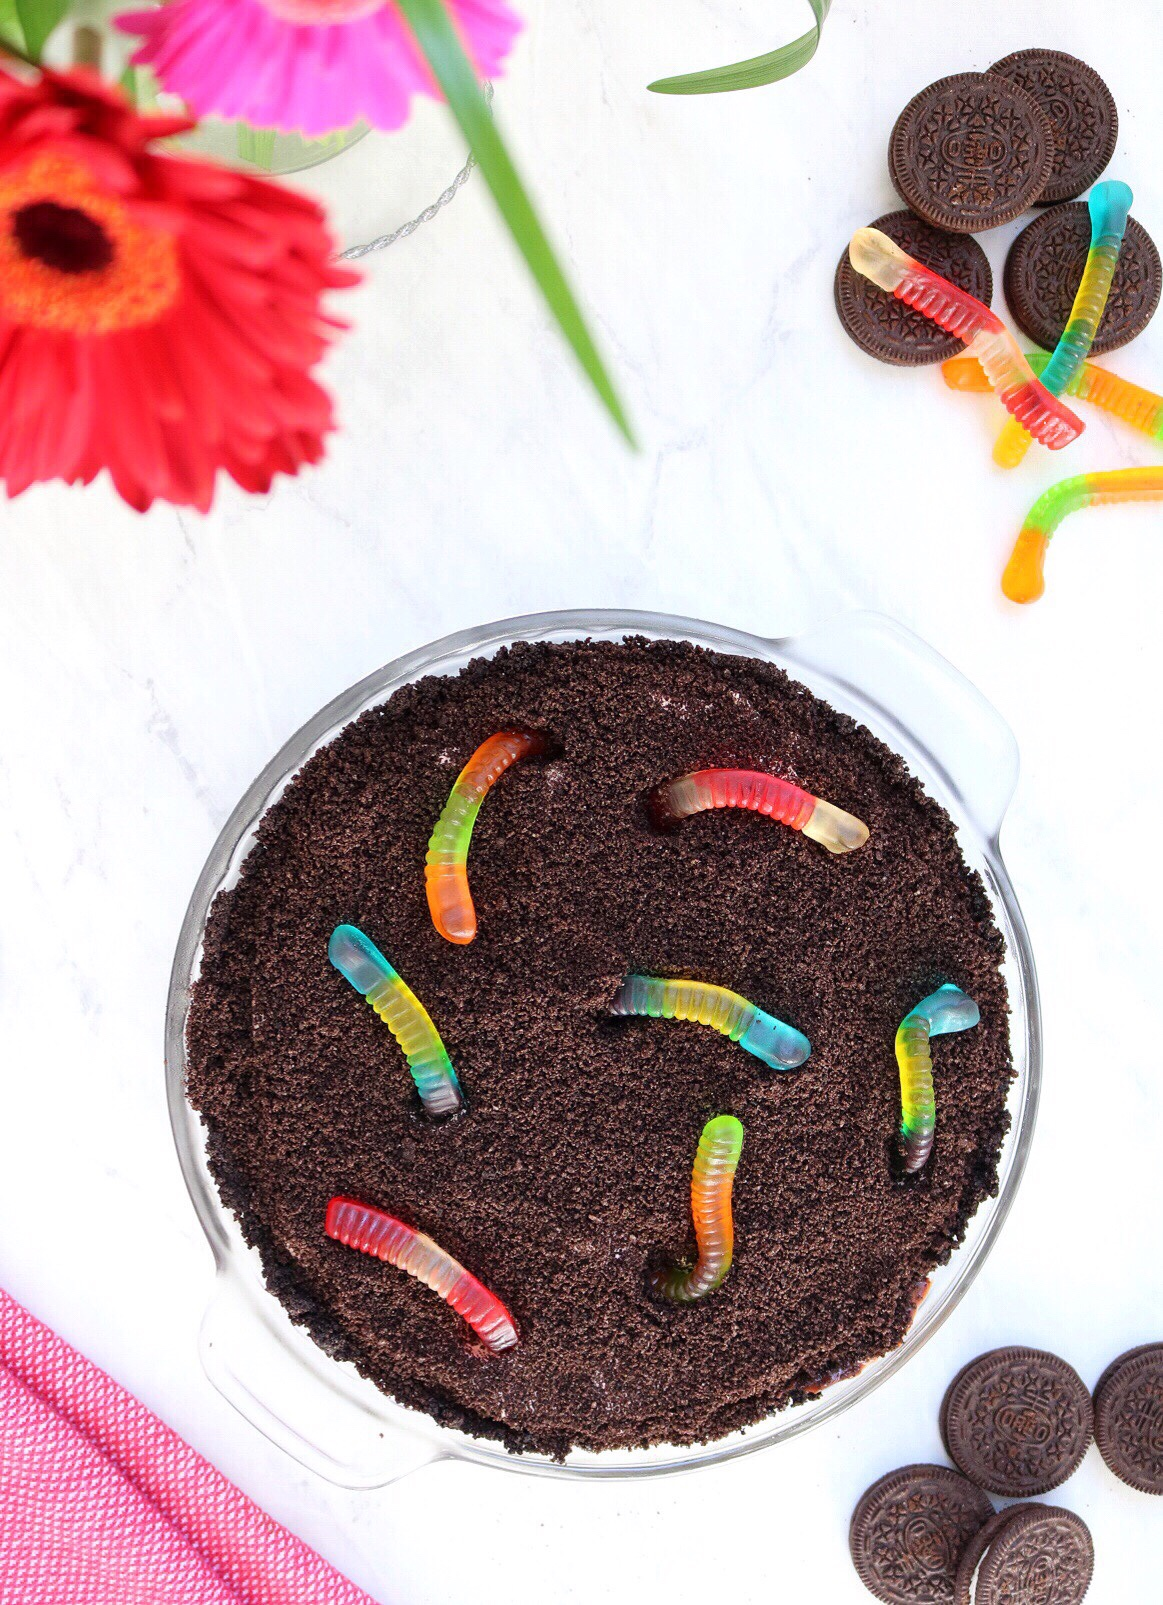 Dirt Cup Chocolate Pudding Pie | via Pies Before Guys